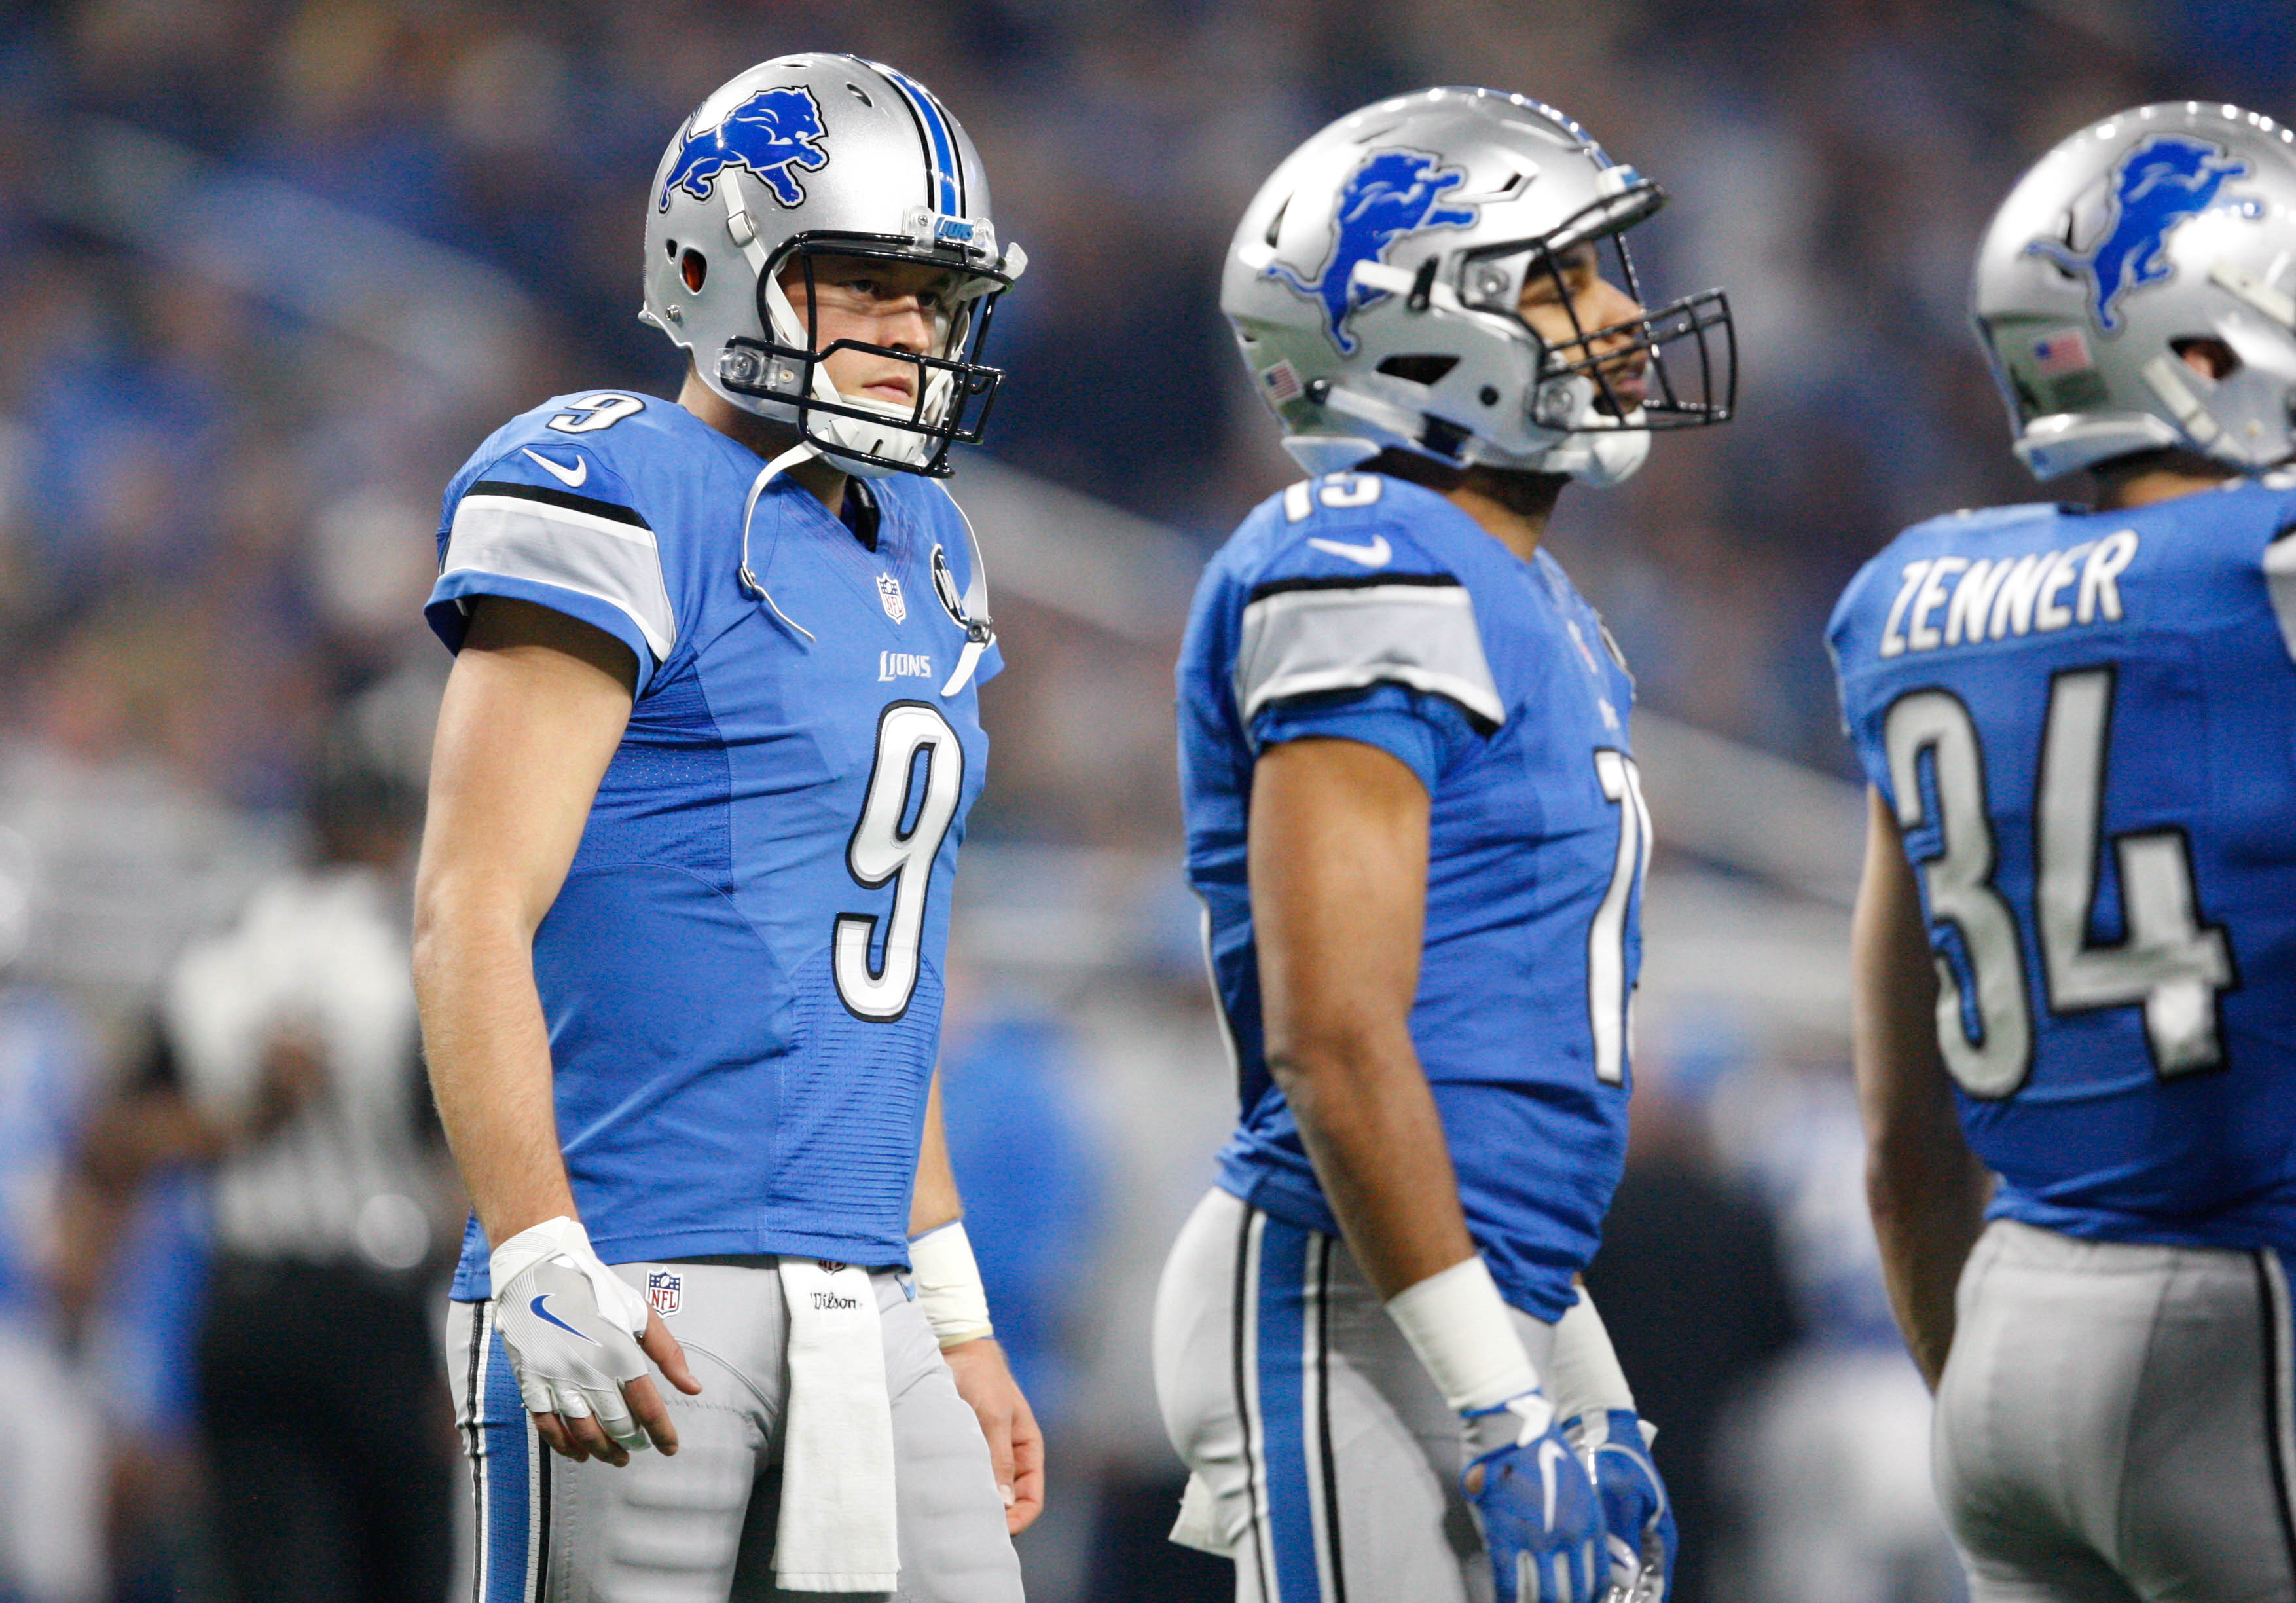 9791768-nfl-green-bay-packers-at-detroit-lions